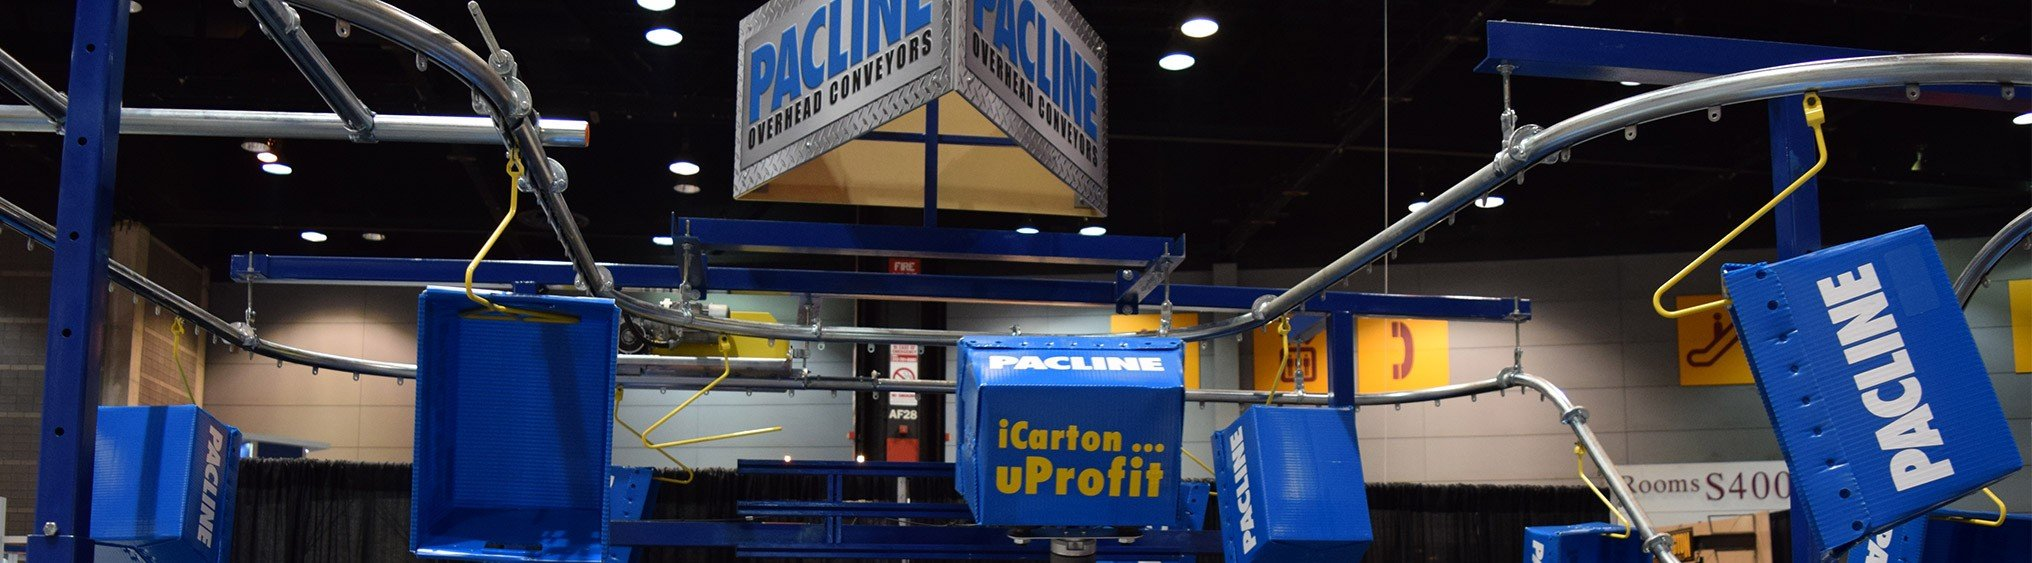 Pacline Overhead Conveyors at ProMat Show 2015